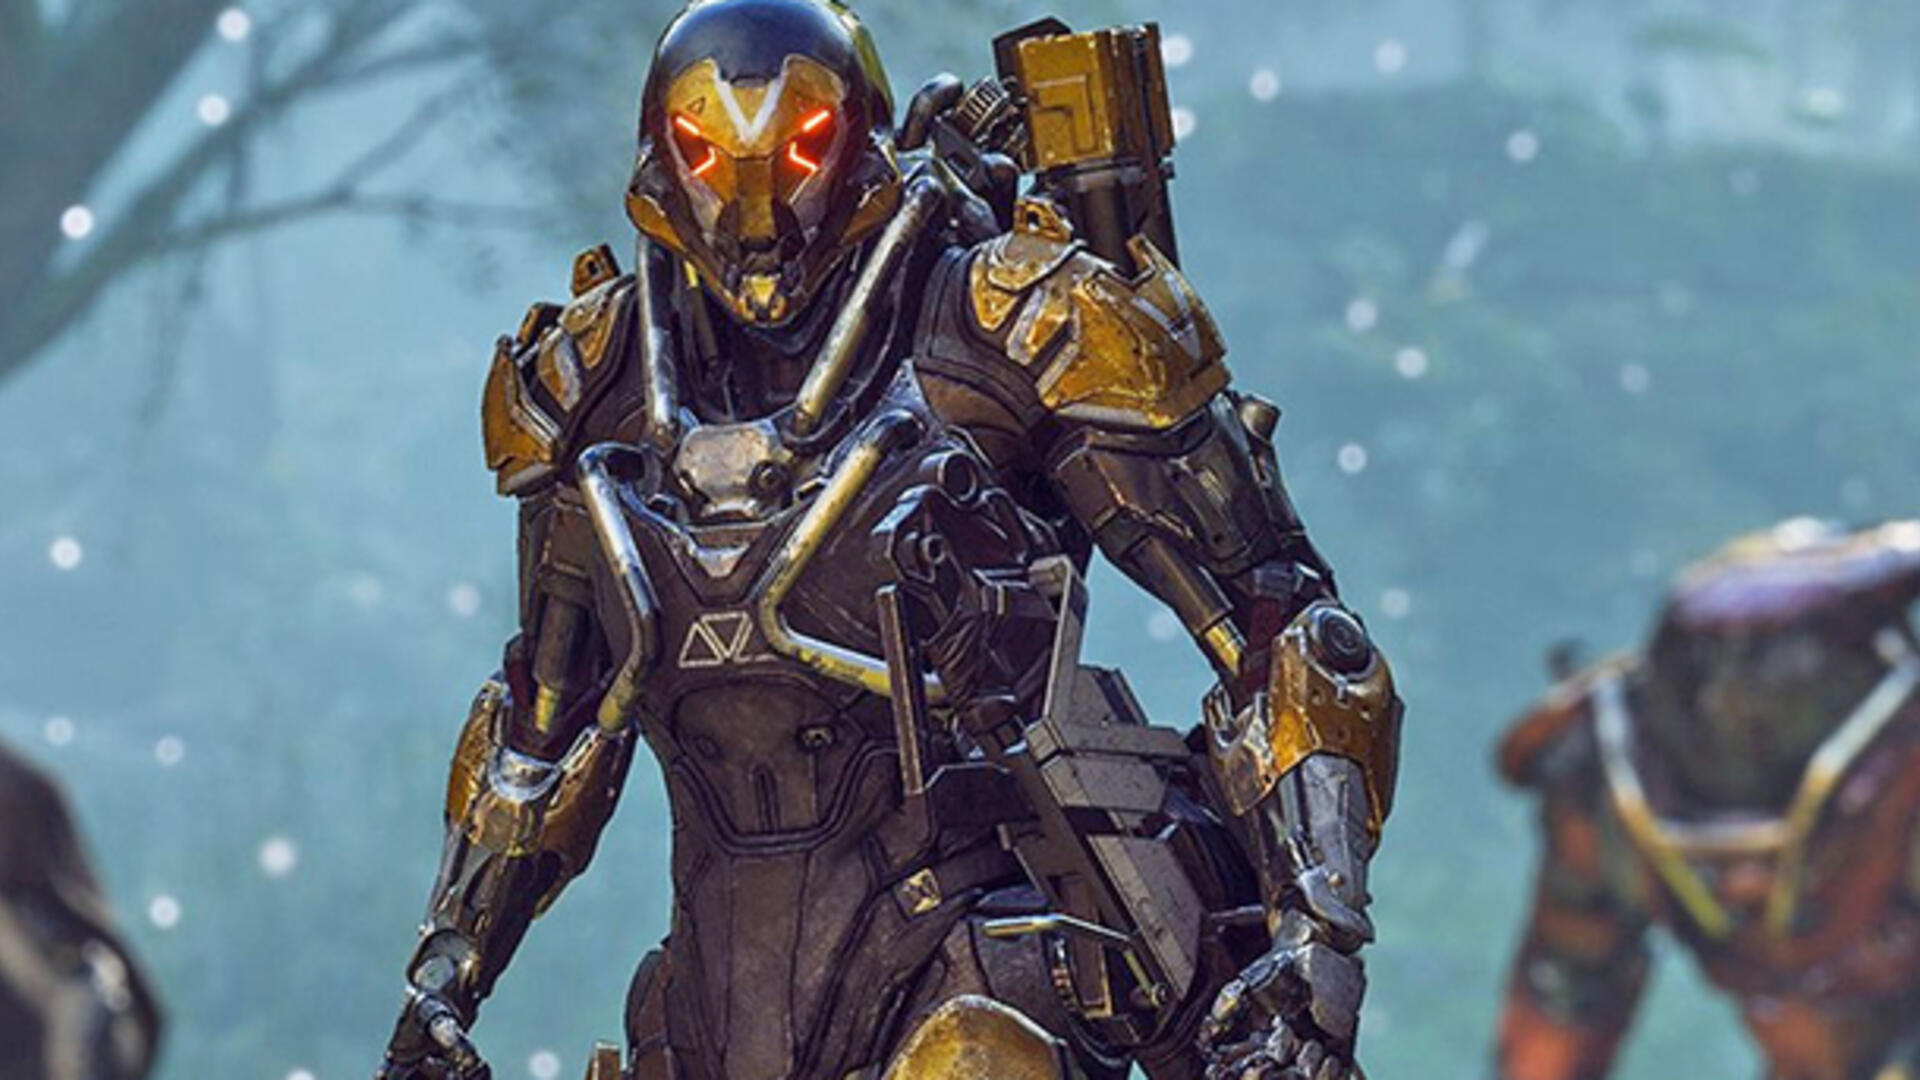 Watch the Anthem Gameplay Livestream Here to See Brand New Footage